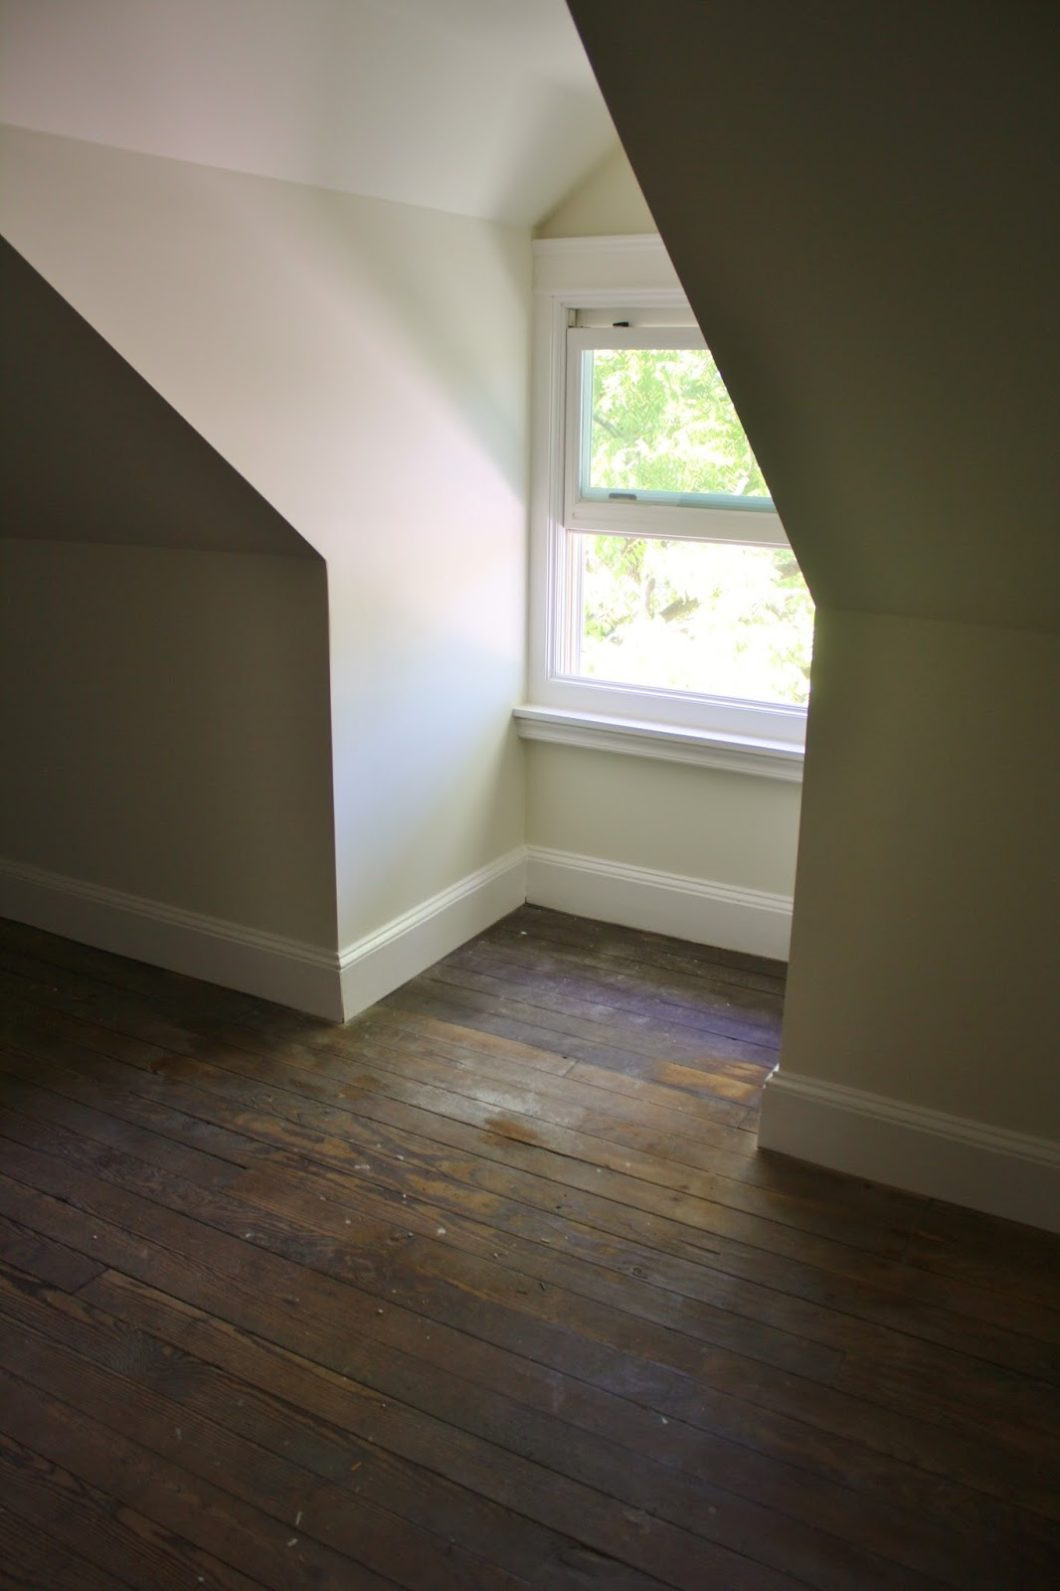 hardwood floor refinishing calgary of image number 6568 from post restoring old hardwood floors will within high street market floor refinished hardwood diy restoring old floors will wood refinishing parquet stripping and